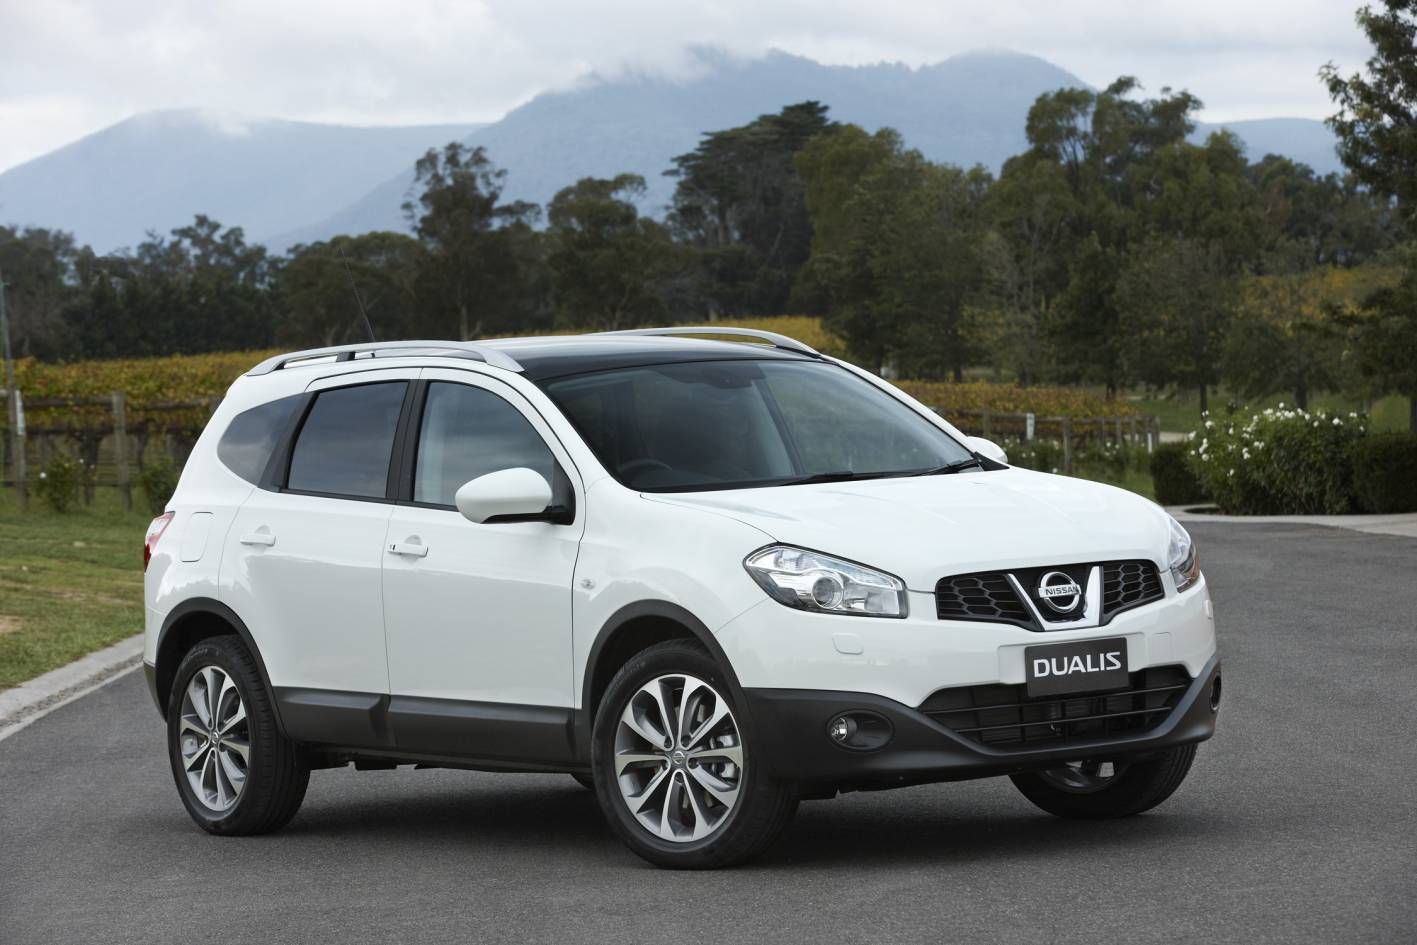 7 Seater Cars & 7 Seater SUVs Family car, 7 seater suv